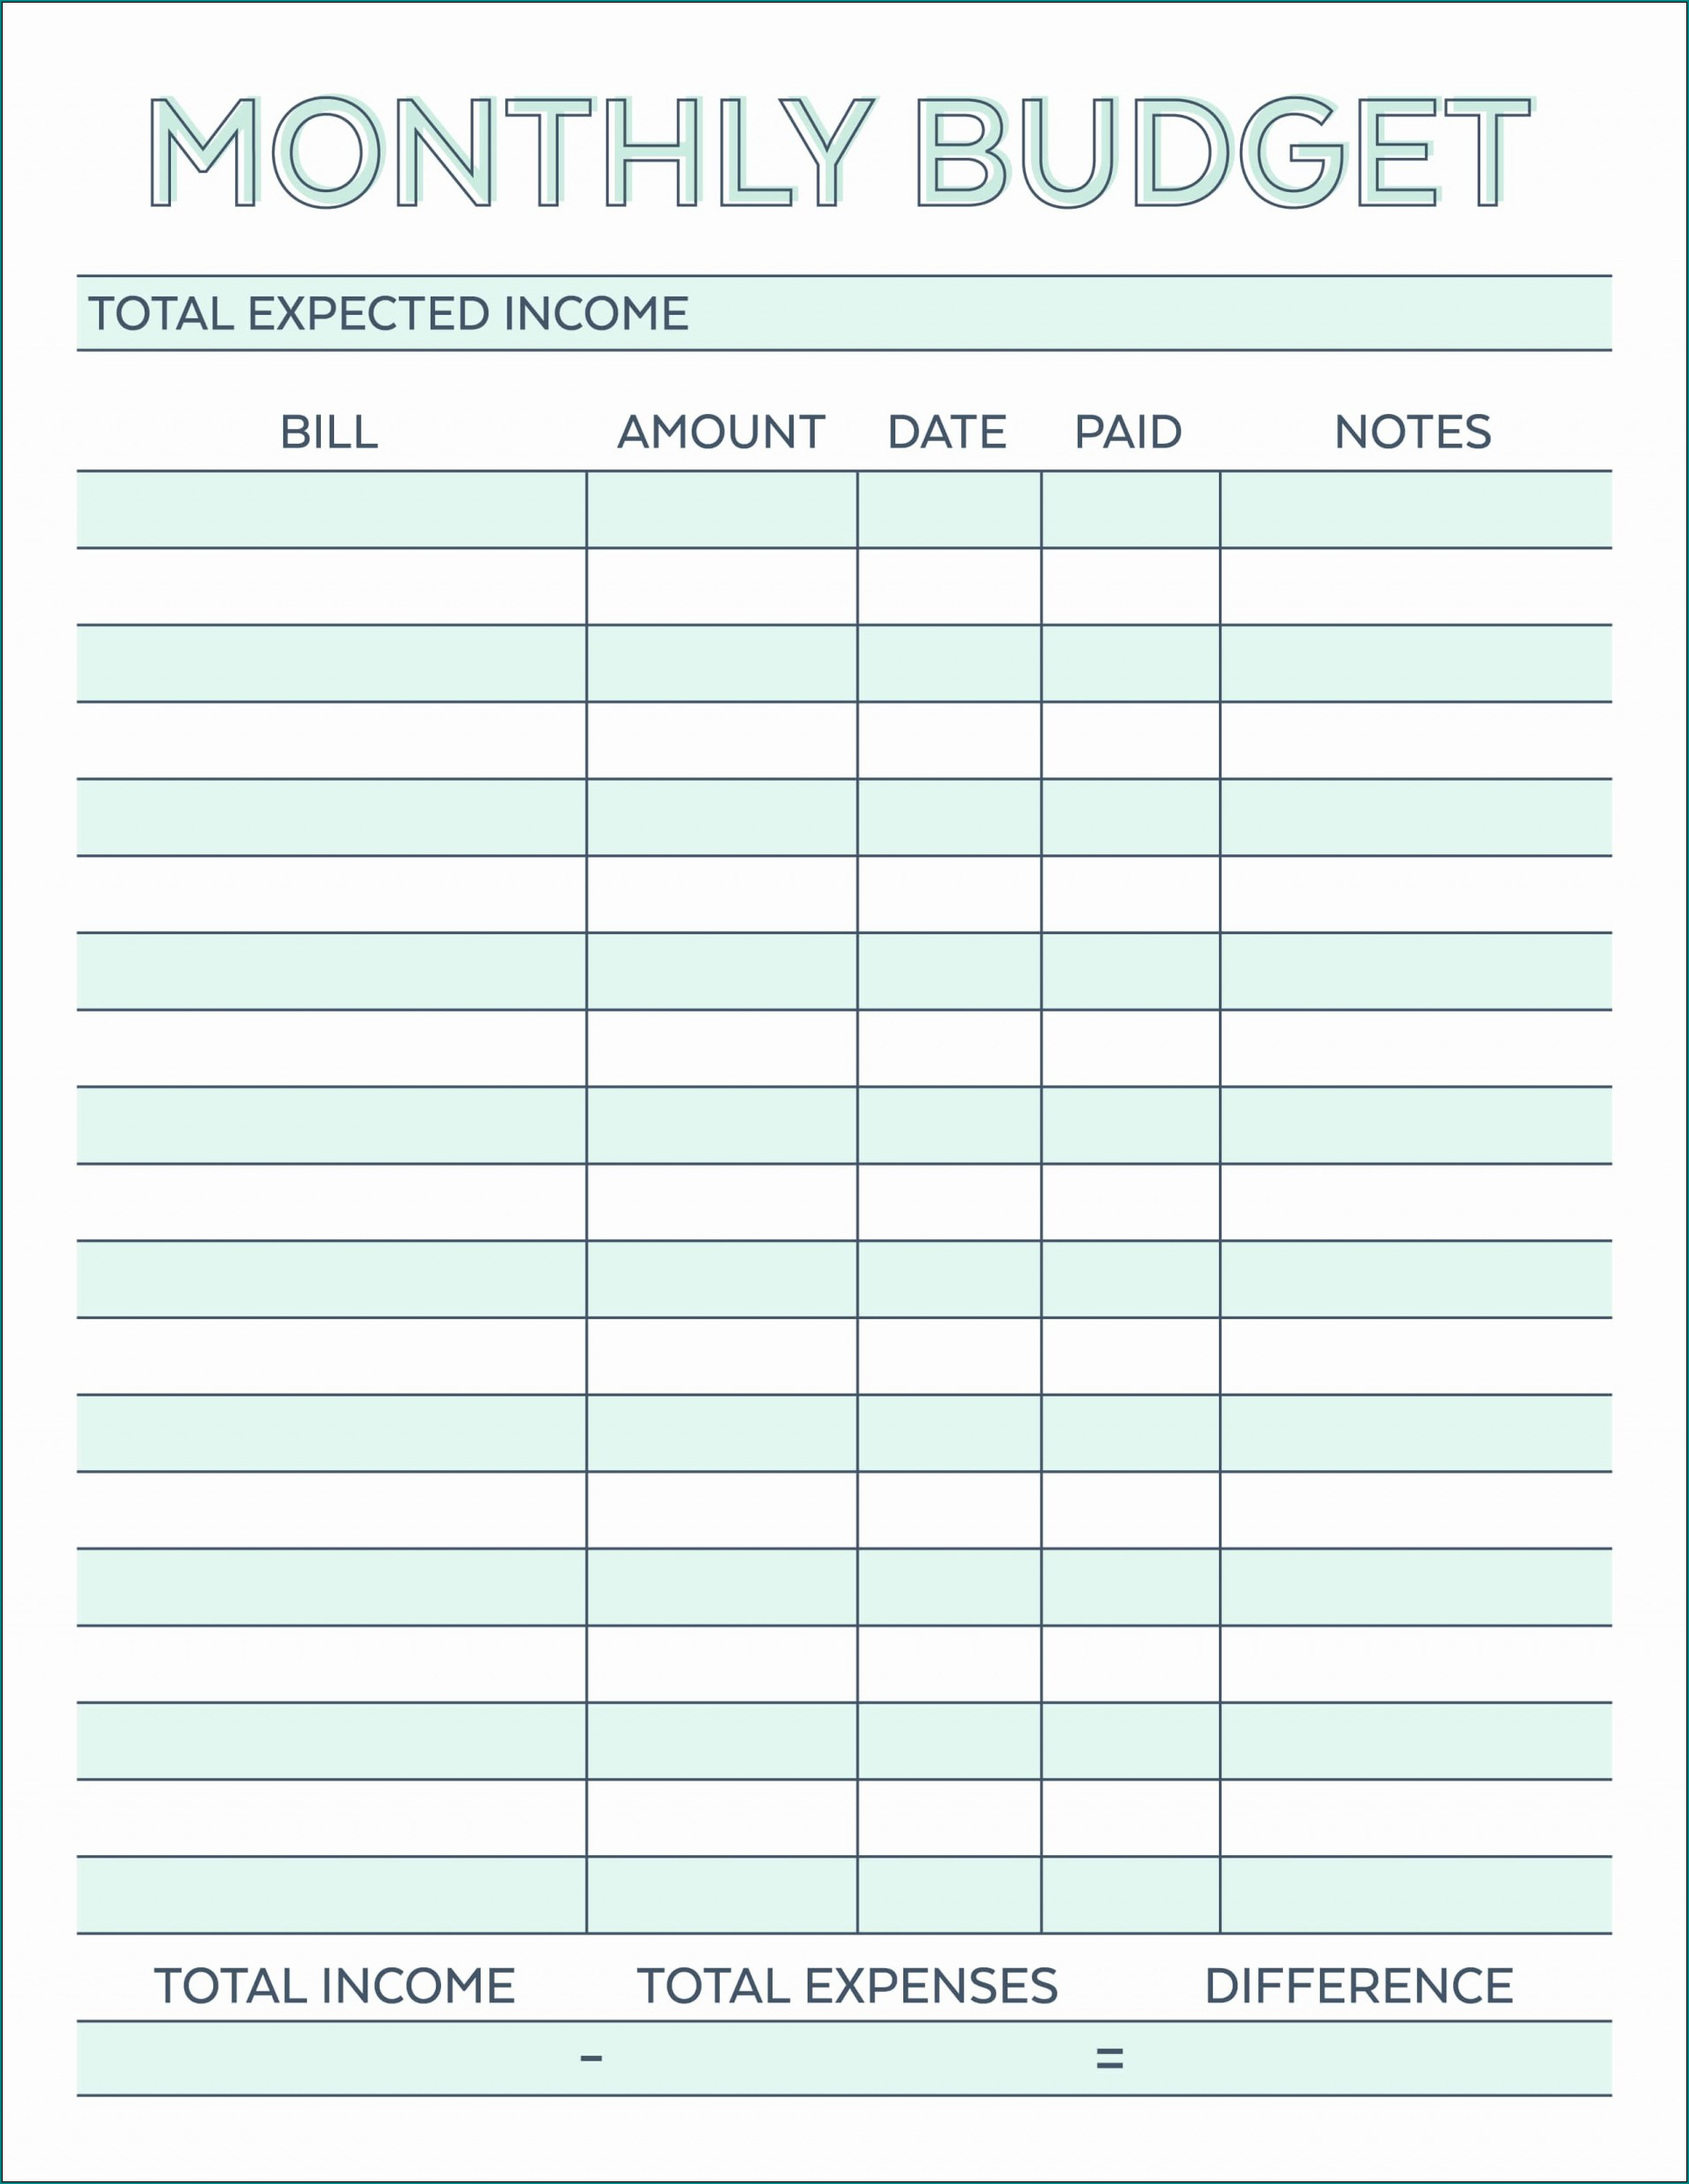 Example of Monthly Budget Template